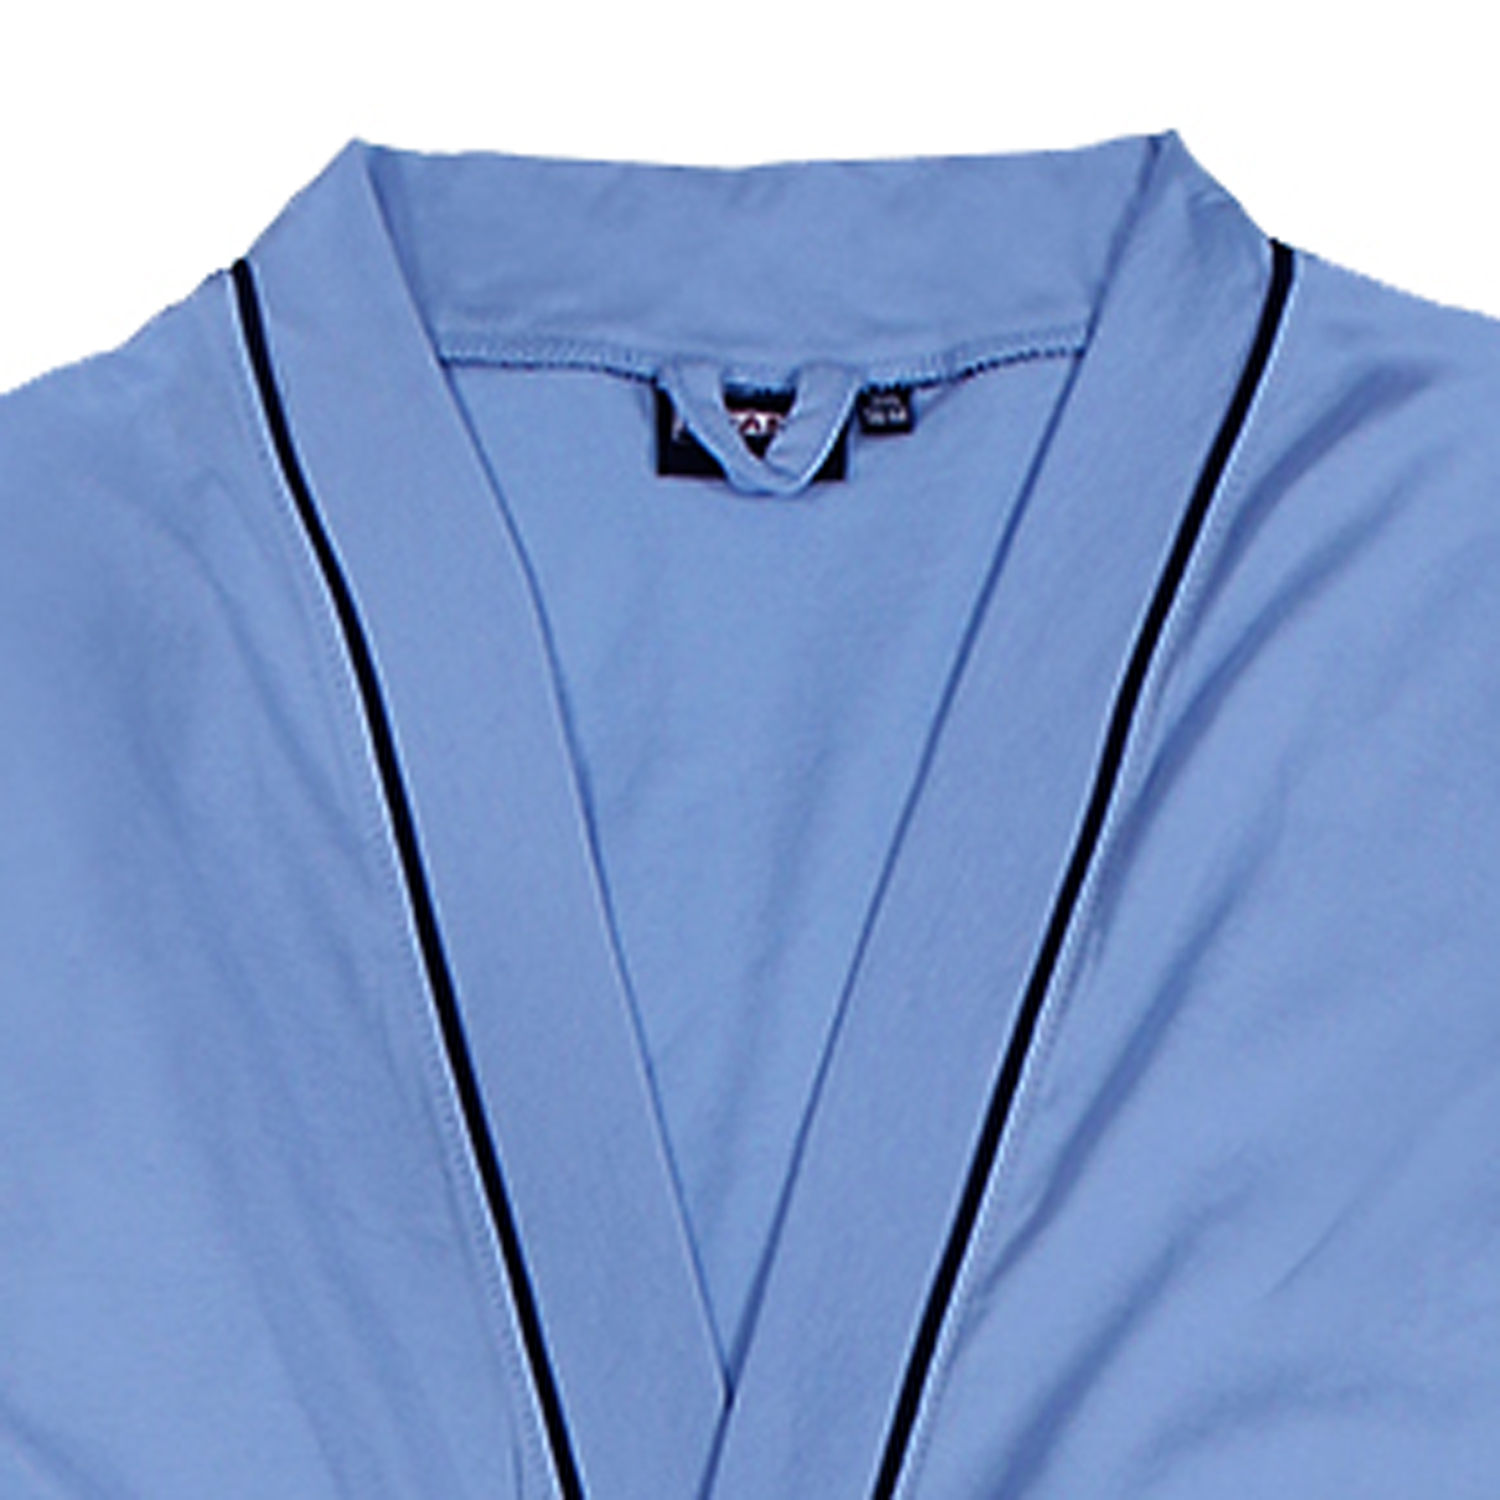 Detail Image to Bathrobe for men in light blue by ADAMO up to oversize 10XL